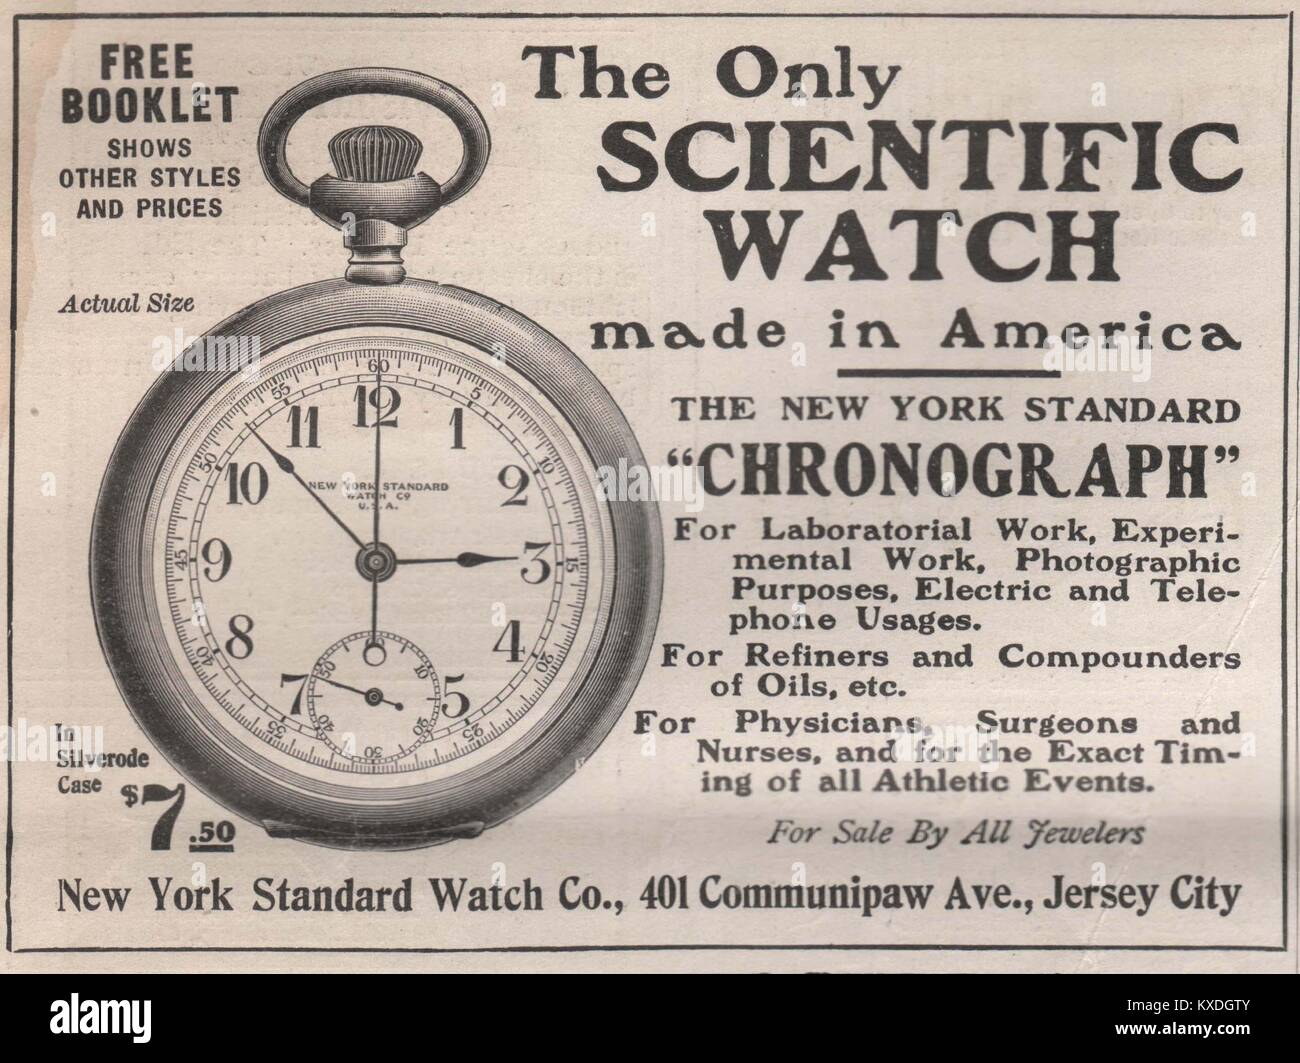 'The only Scientific watch' made in America the New York Standard 'Chronograph' - New York standard - Stock Image